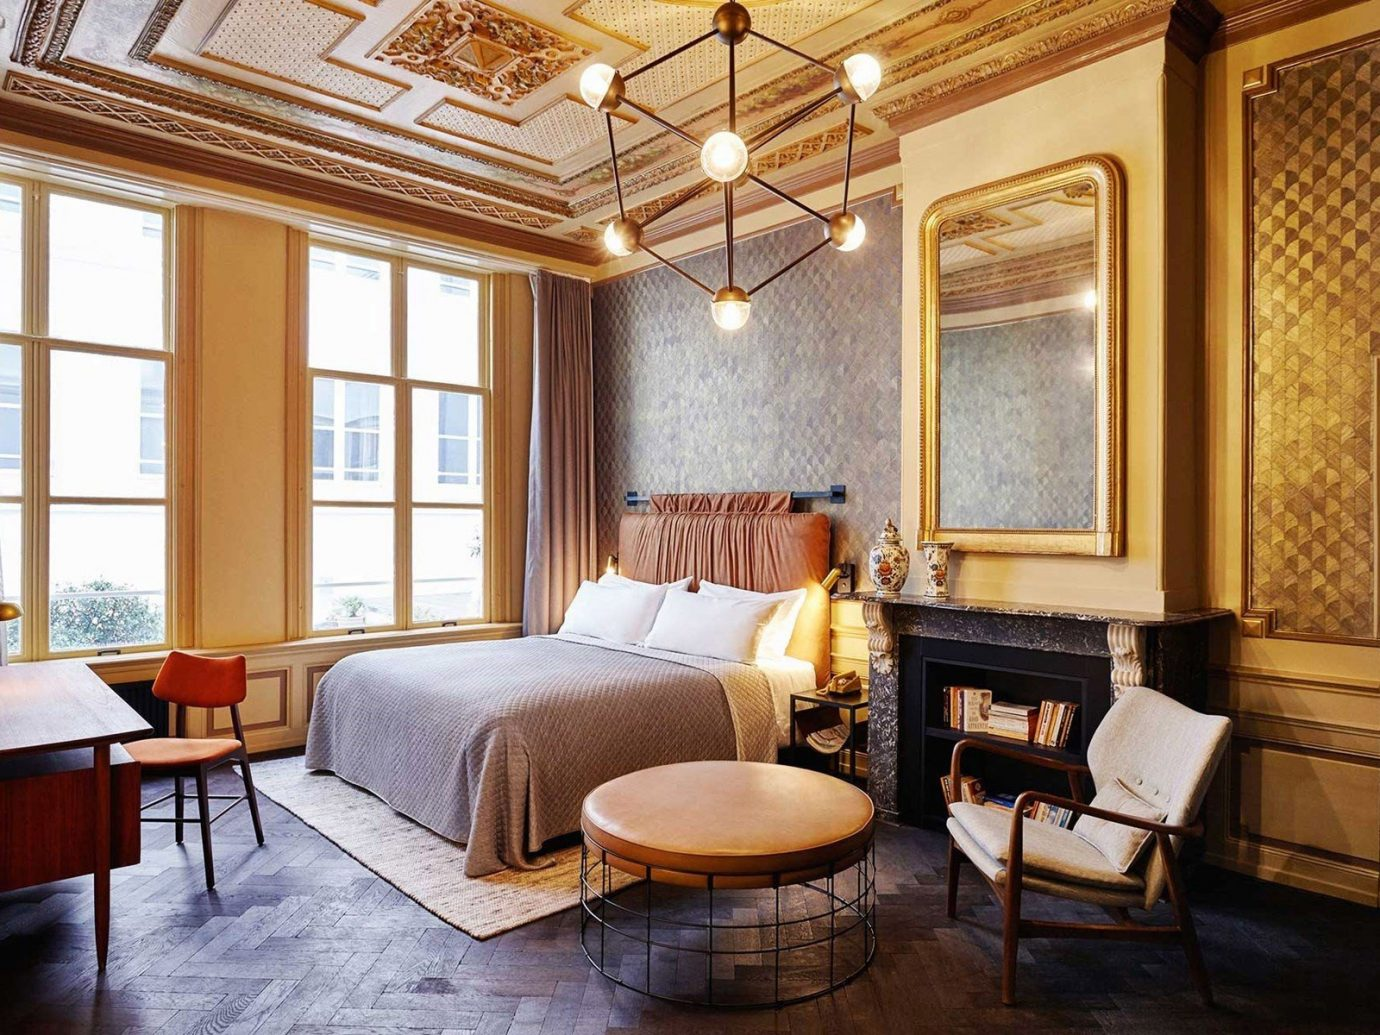 Amsterdam Boutique Hotels Hotels The Netherlands window indoor floor room property living room chair estate Living home Suite hardwood interior design cottage real estate farmhouse ceiling mansion wood Villa furniture wood flooring Bedroom area